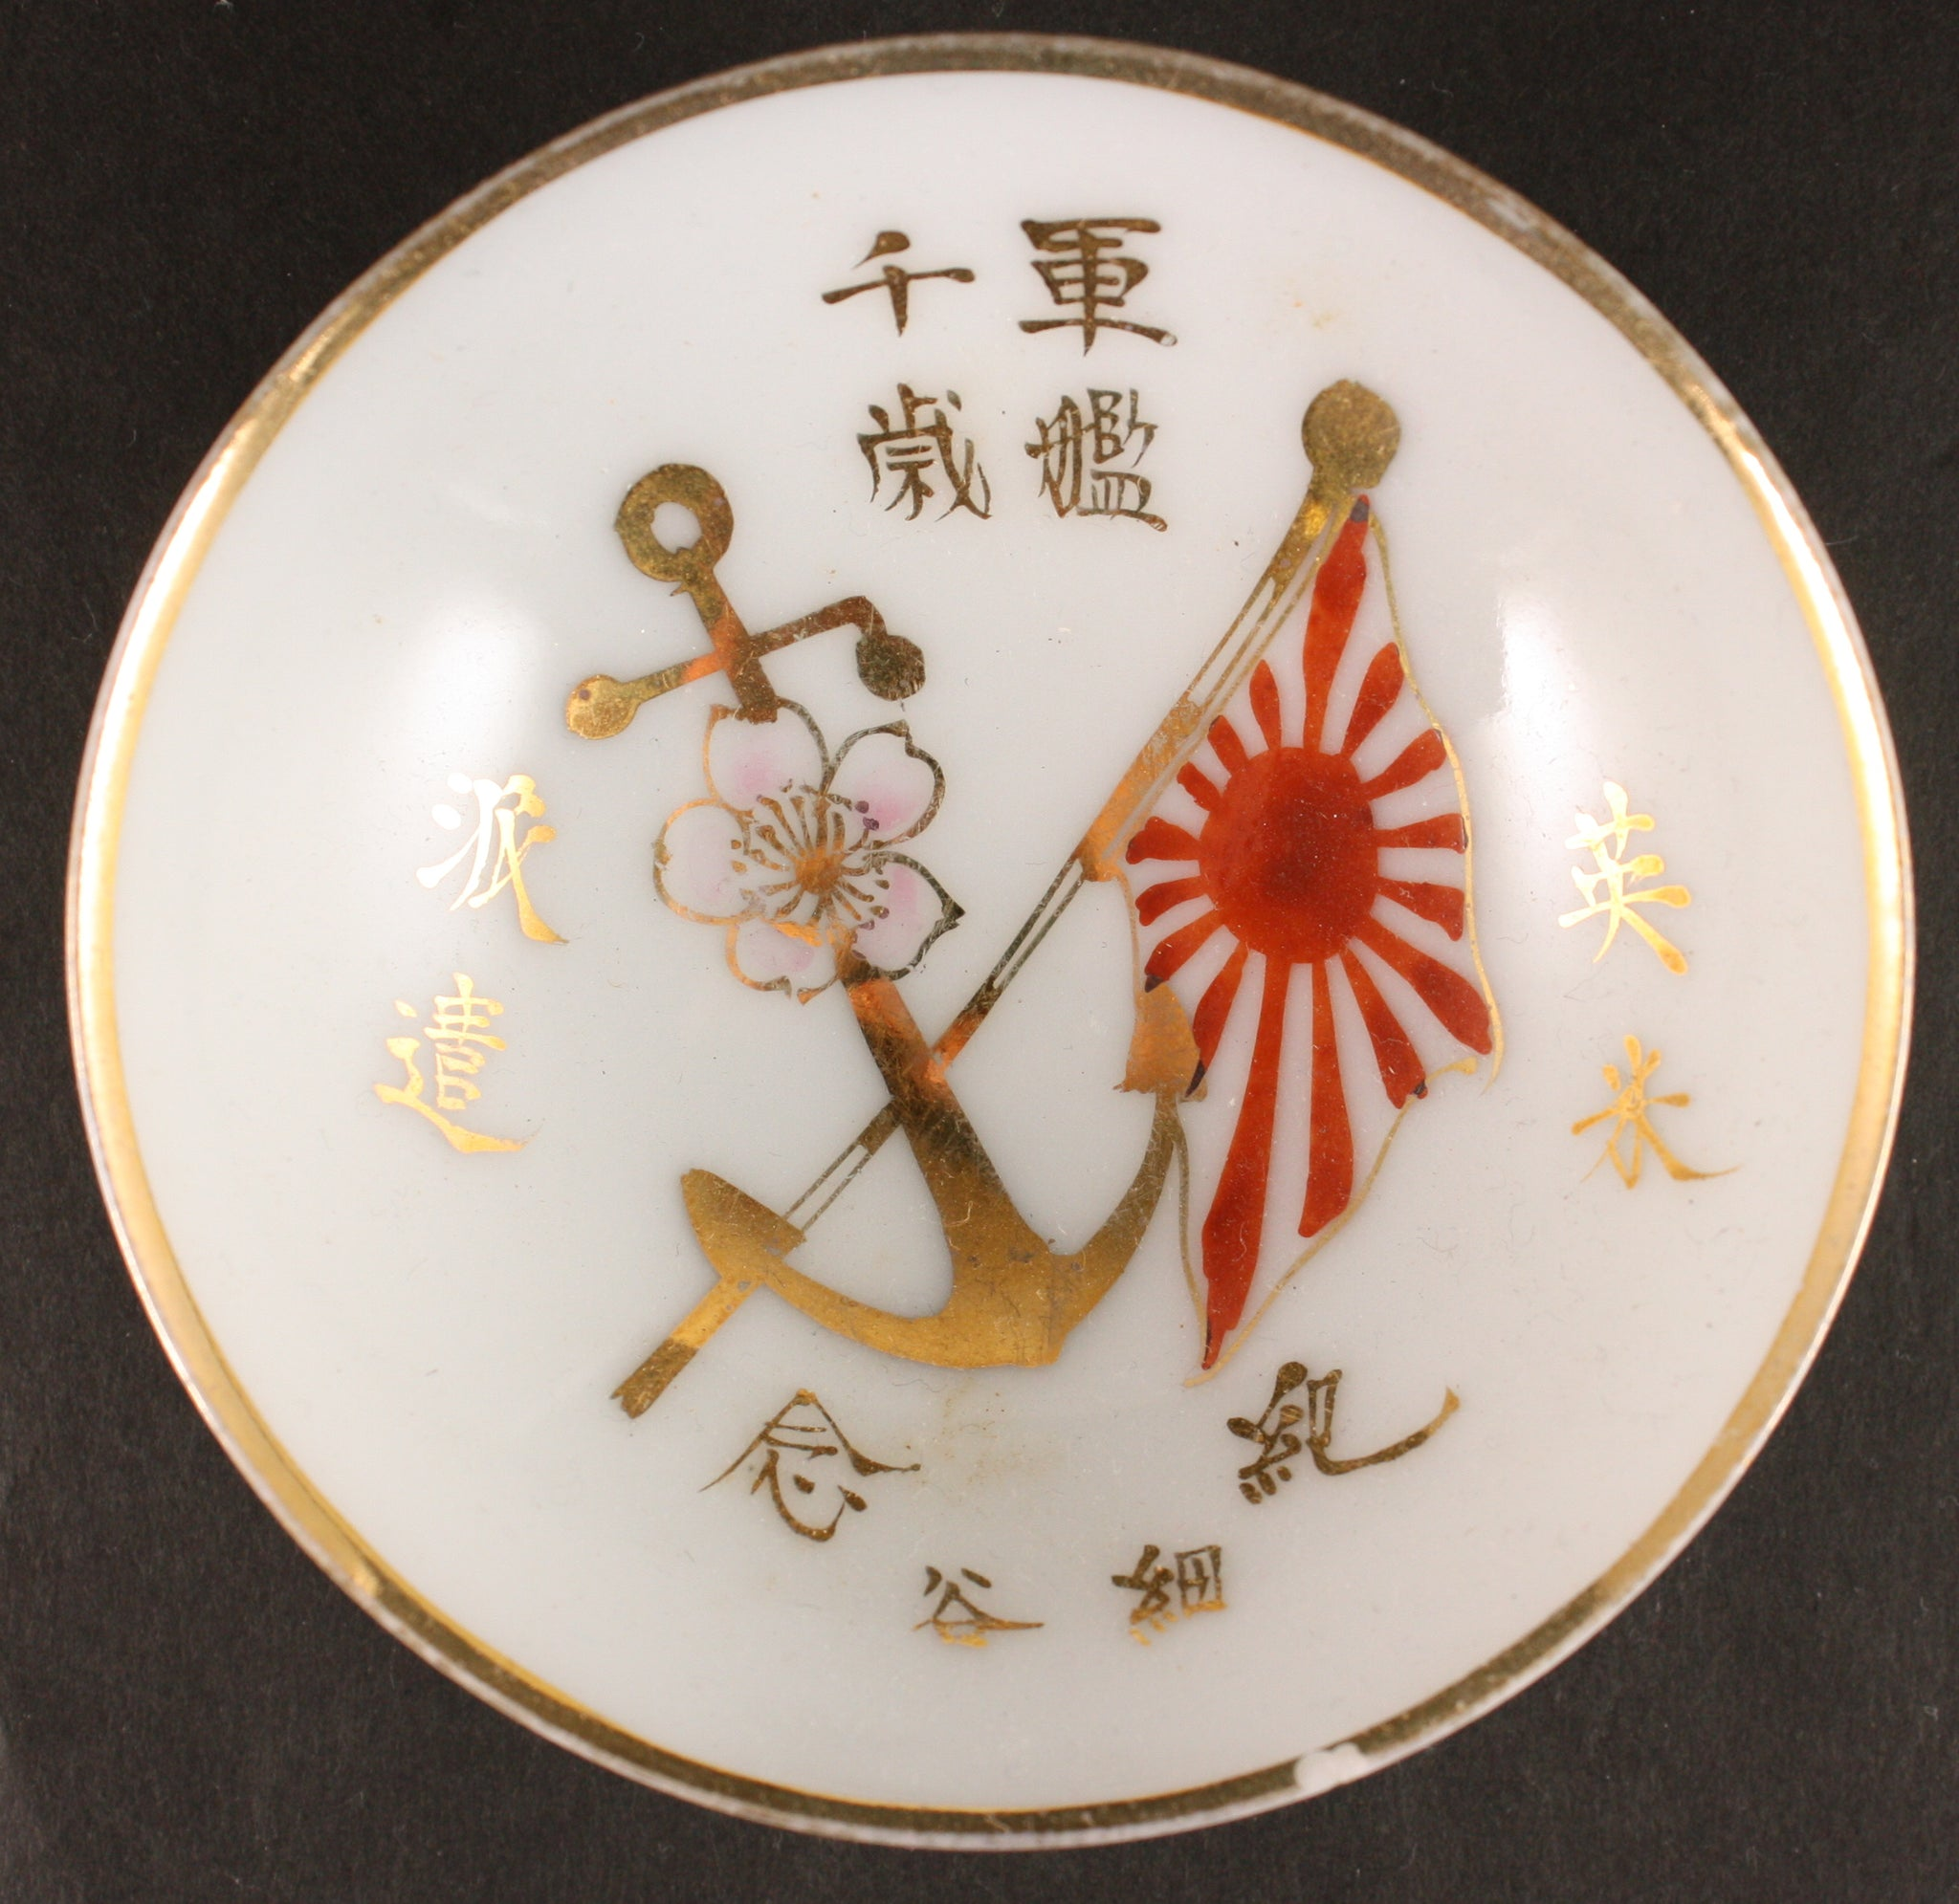 Very Rare Antique Japanese 1907 Cruiser Chitose UK US Tour Commemoration Navy Sake Cup